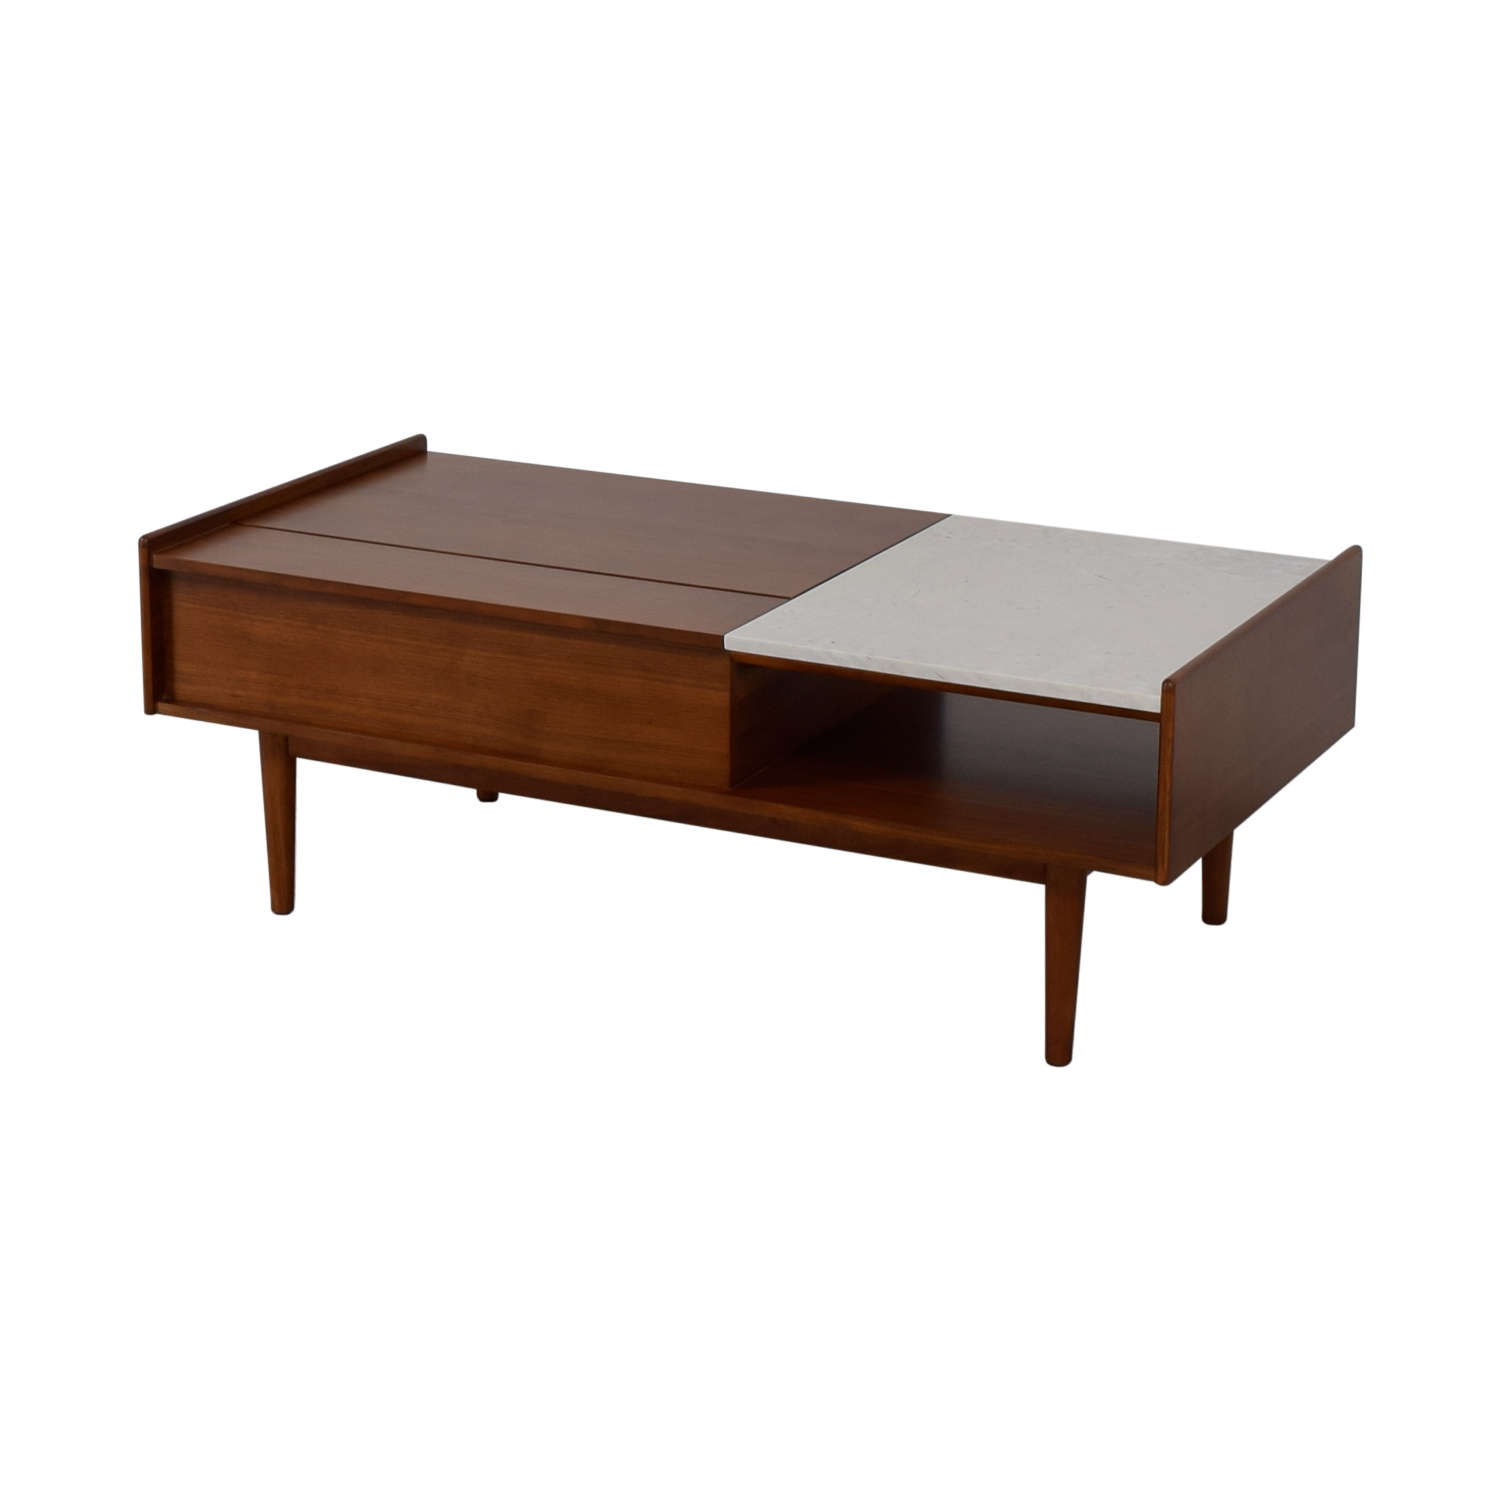 49 Off West Elm West Elm Mid Century Pop Up Walnut And Marble Coffee Table Tables